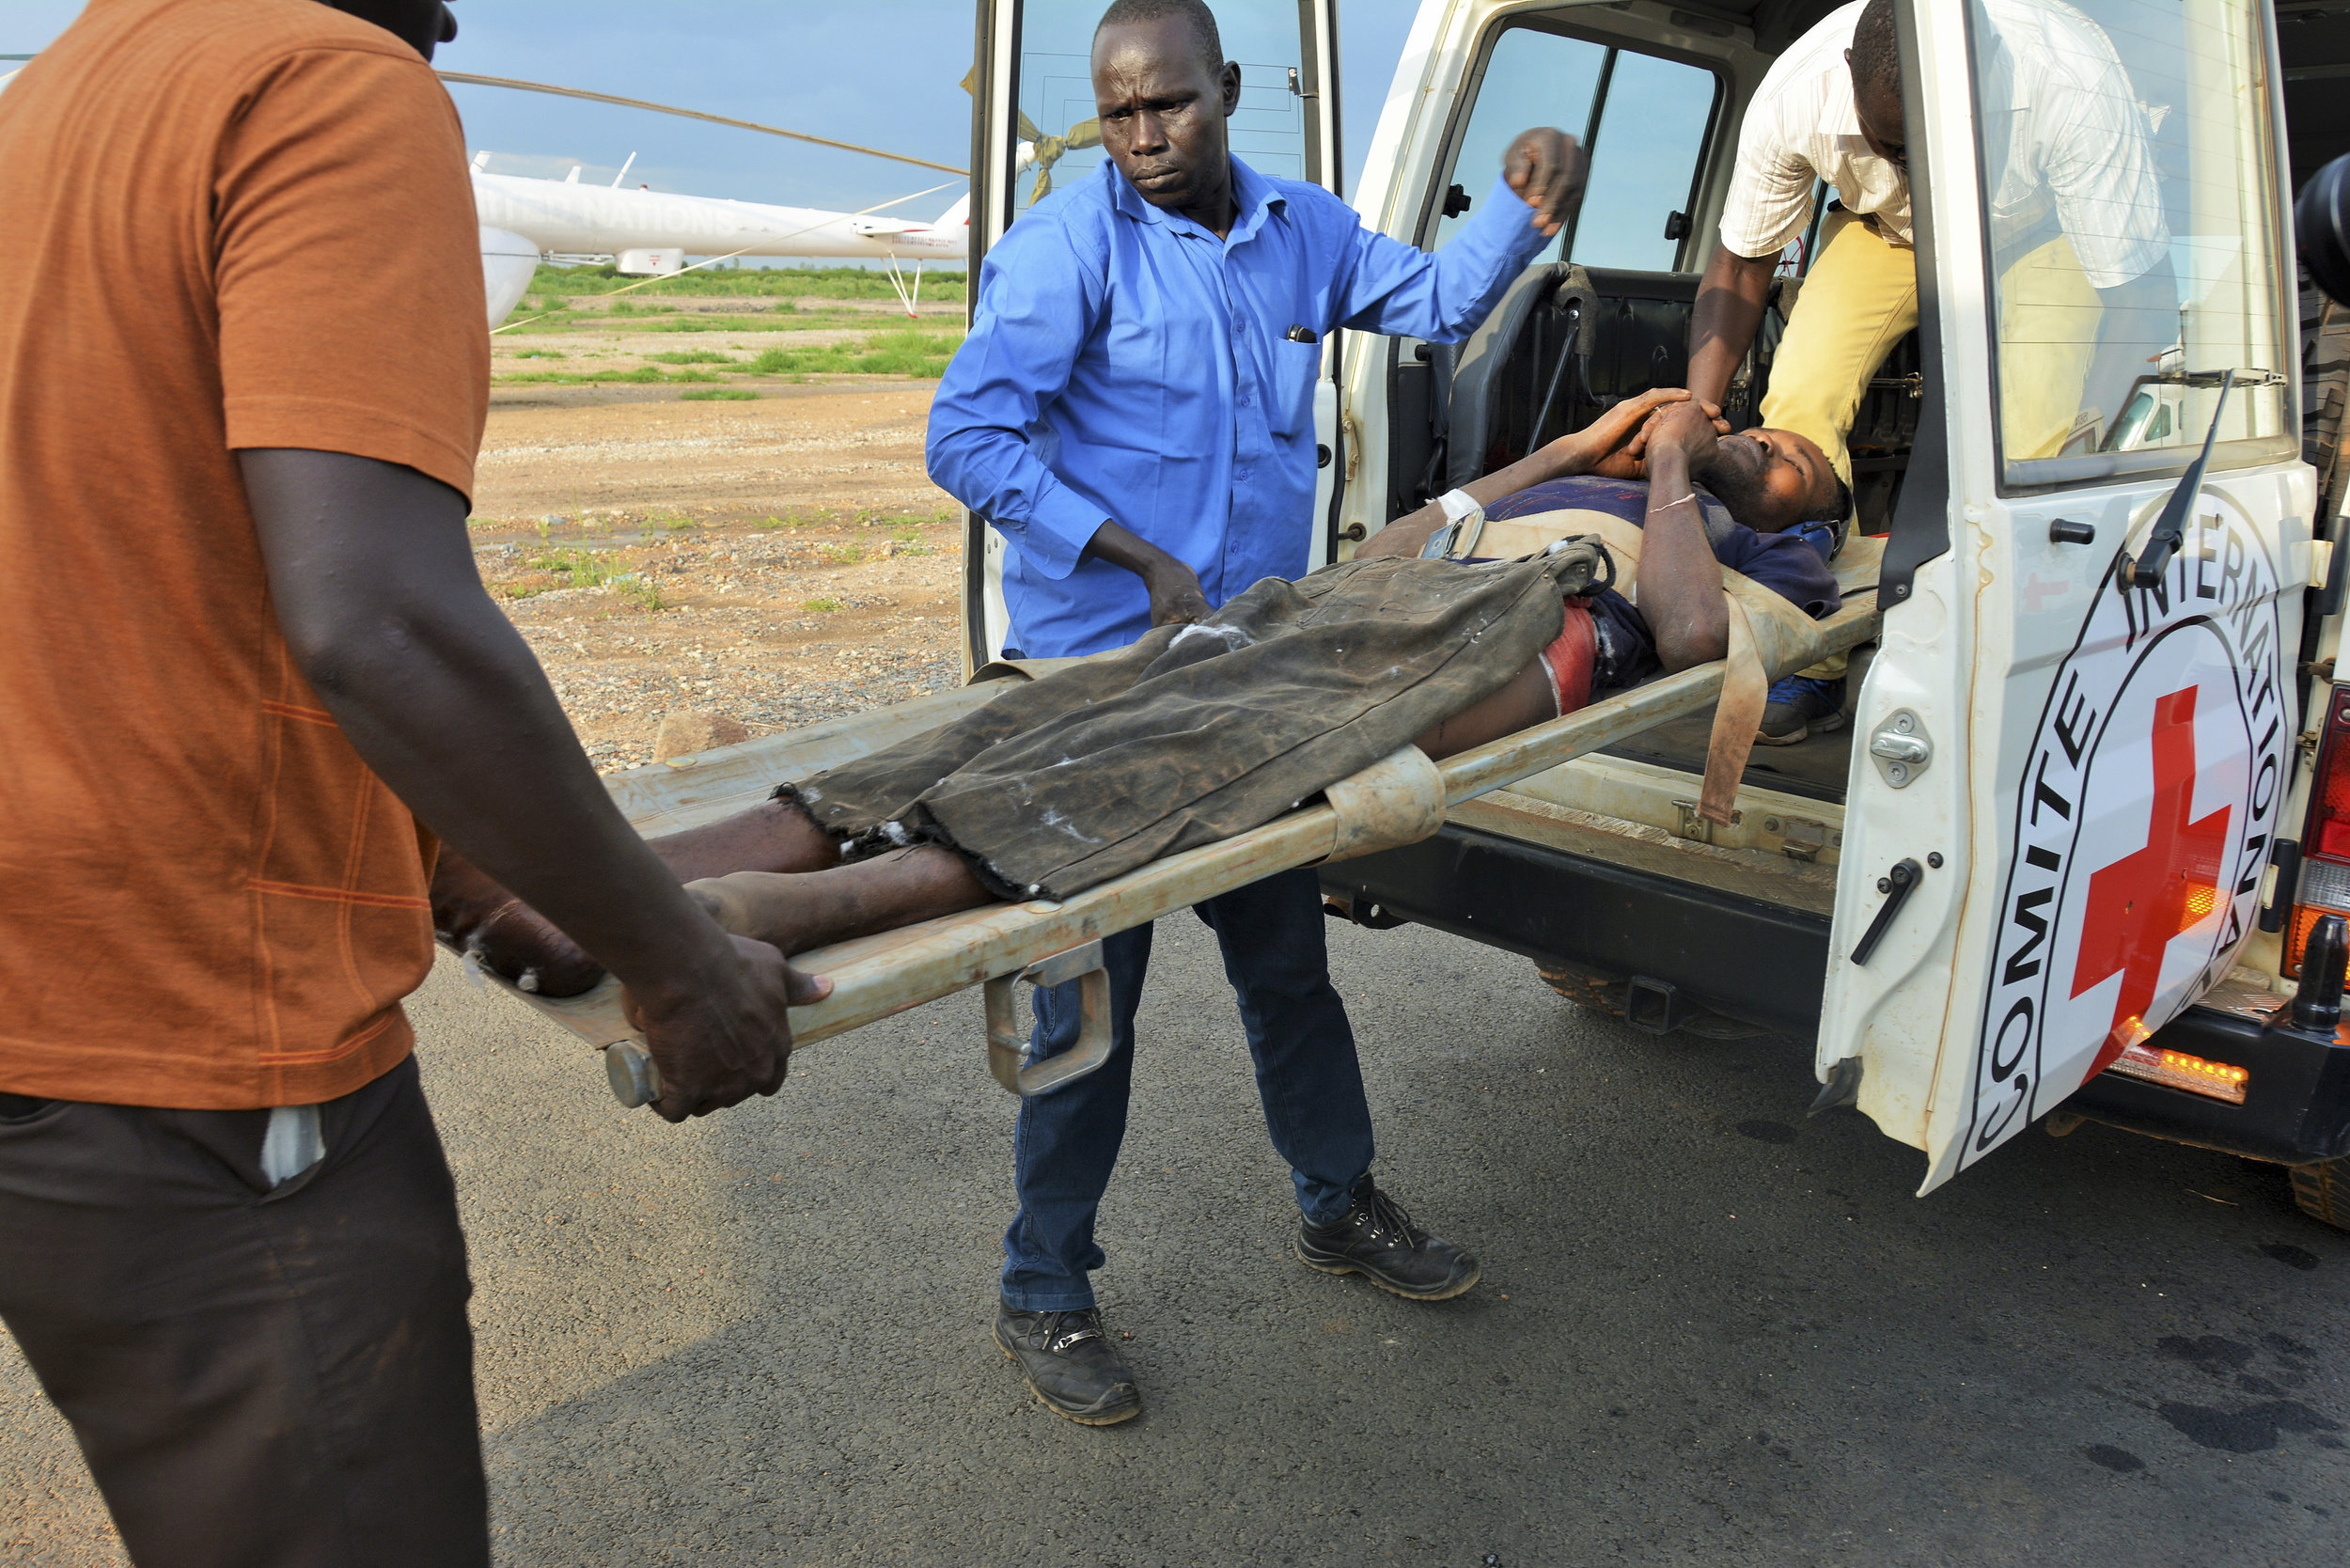 South Sudan.The ICRC evacuates severely wounded persons between Wau and Juba, South Sudan.